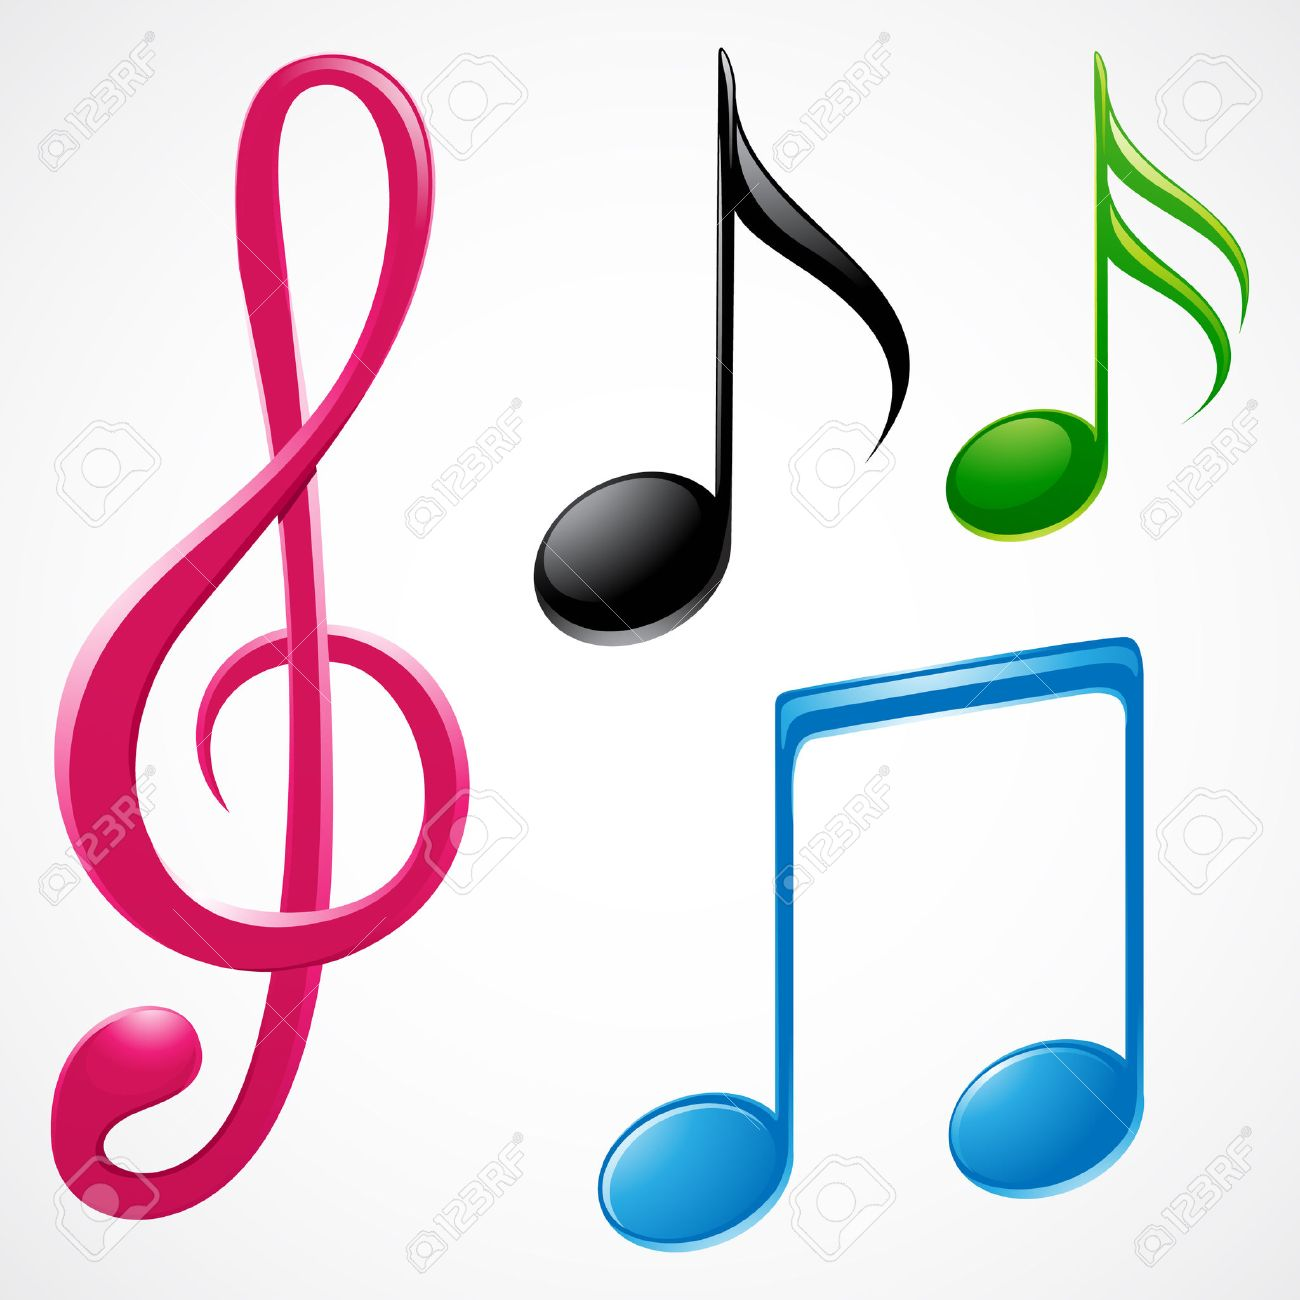 vector illustration of colorful music notes royalty free cliparts